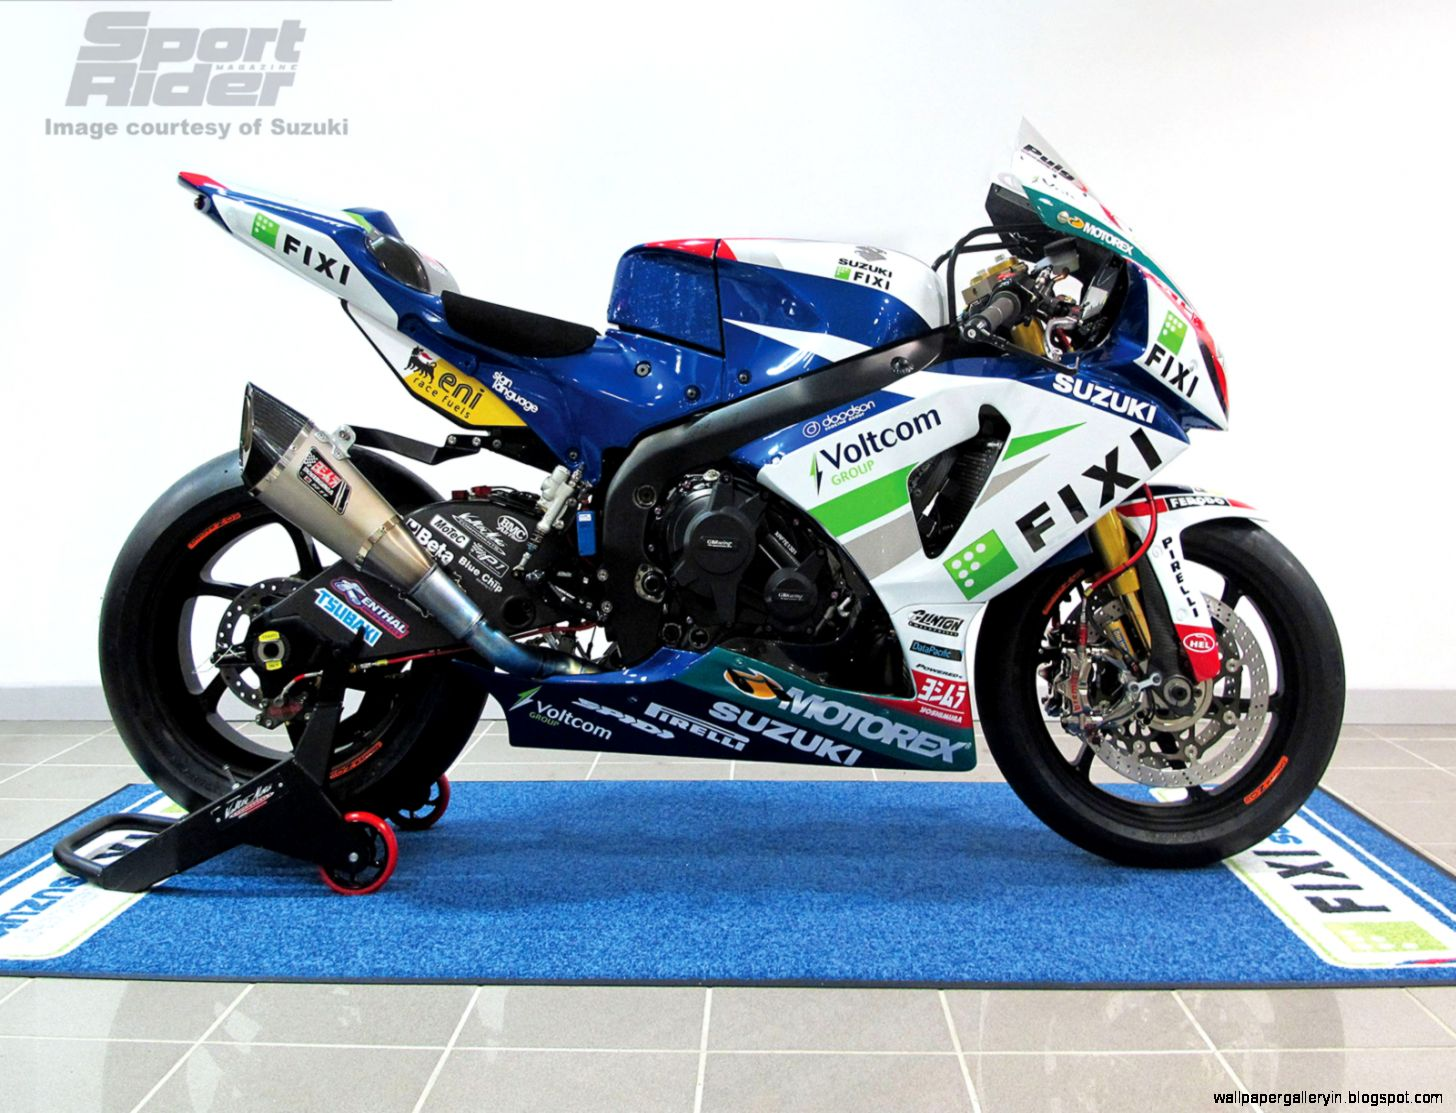 Superbike Fixi Crescent Suzuki HD 2510 Wallpaper